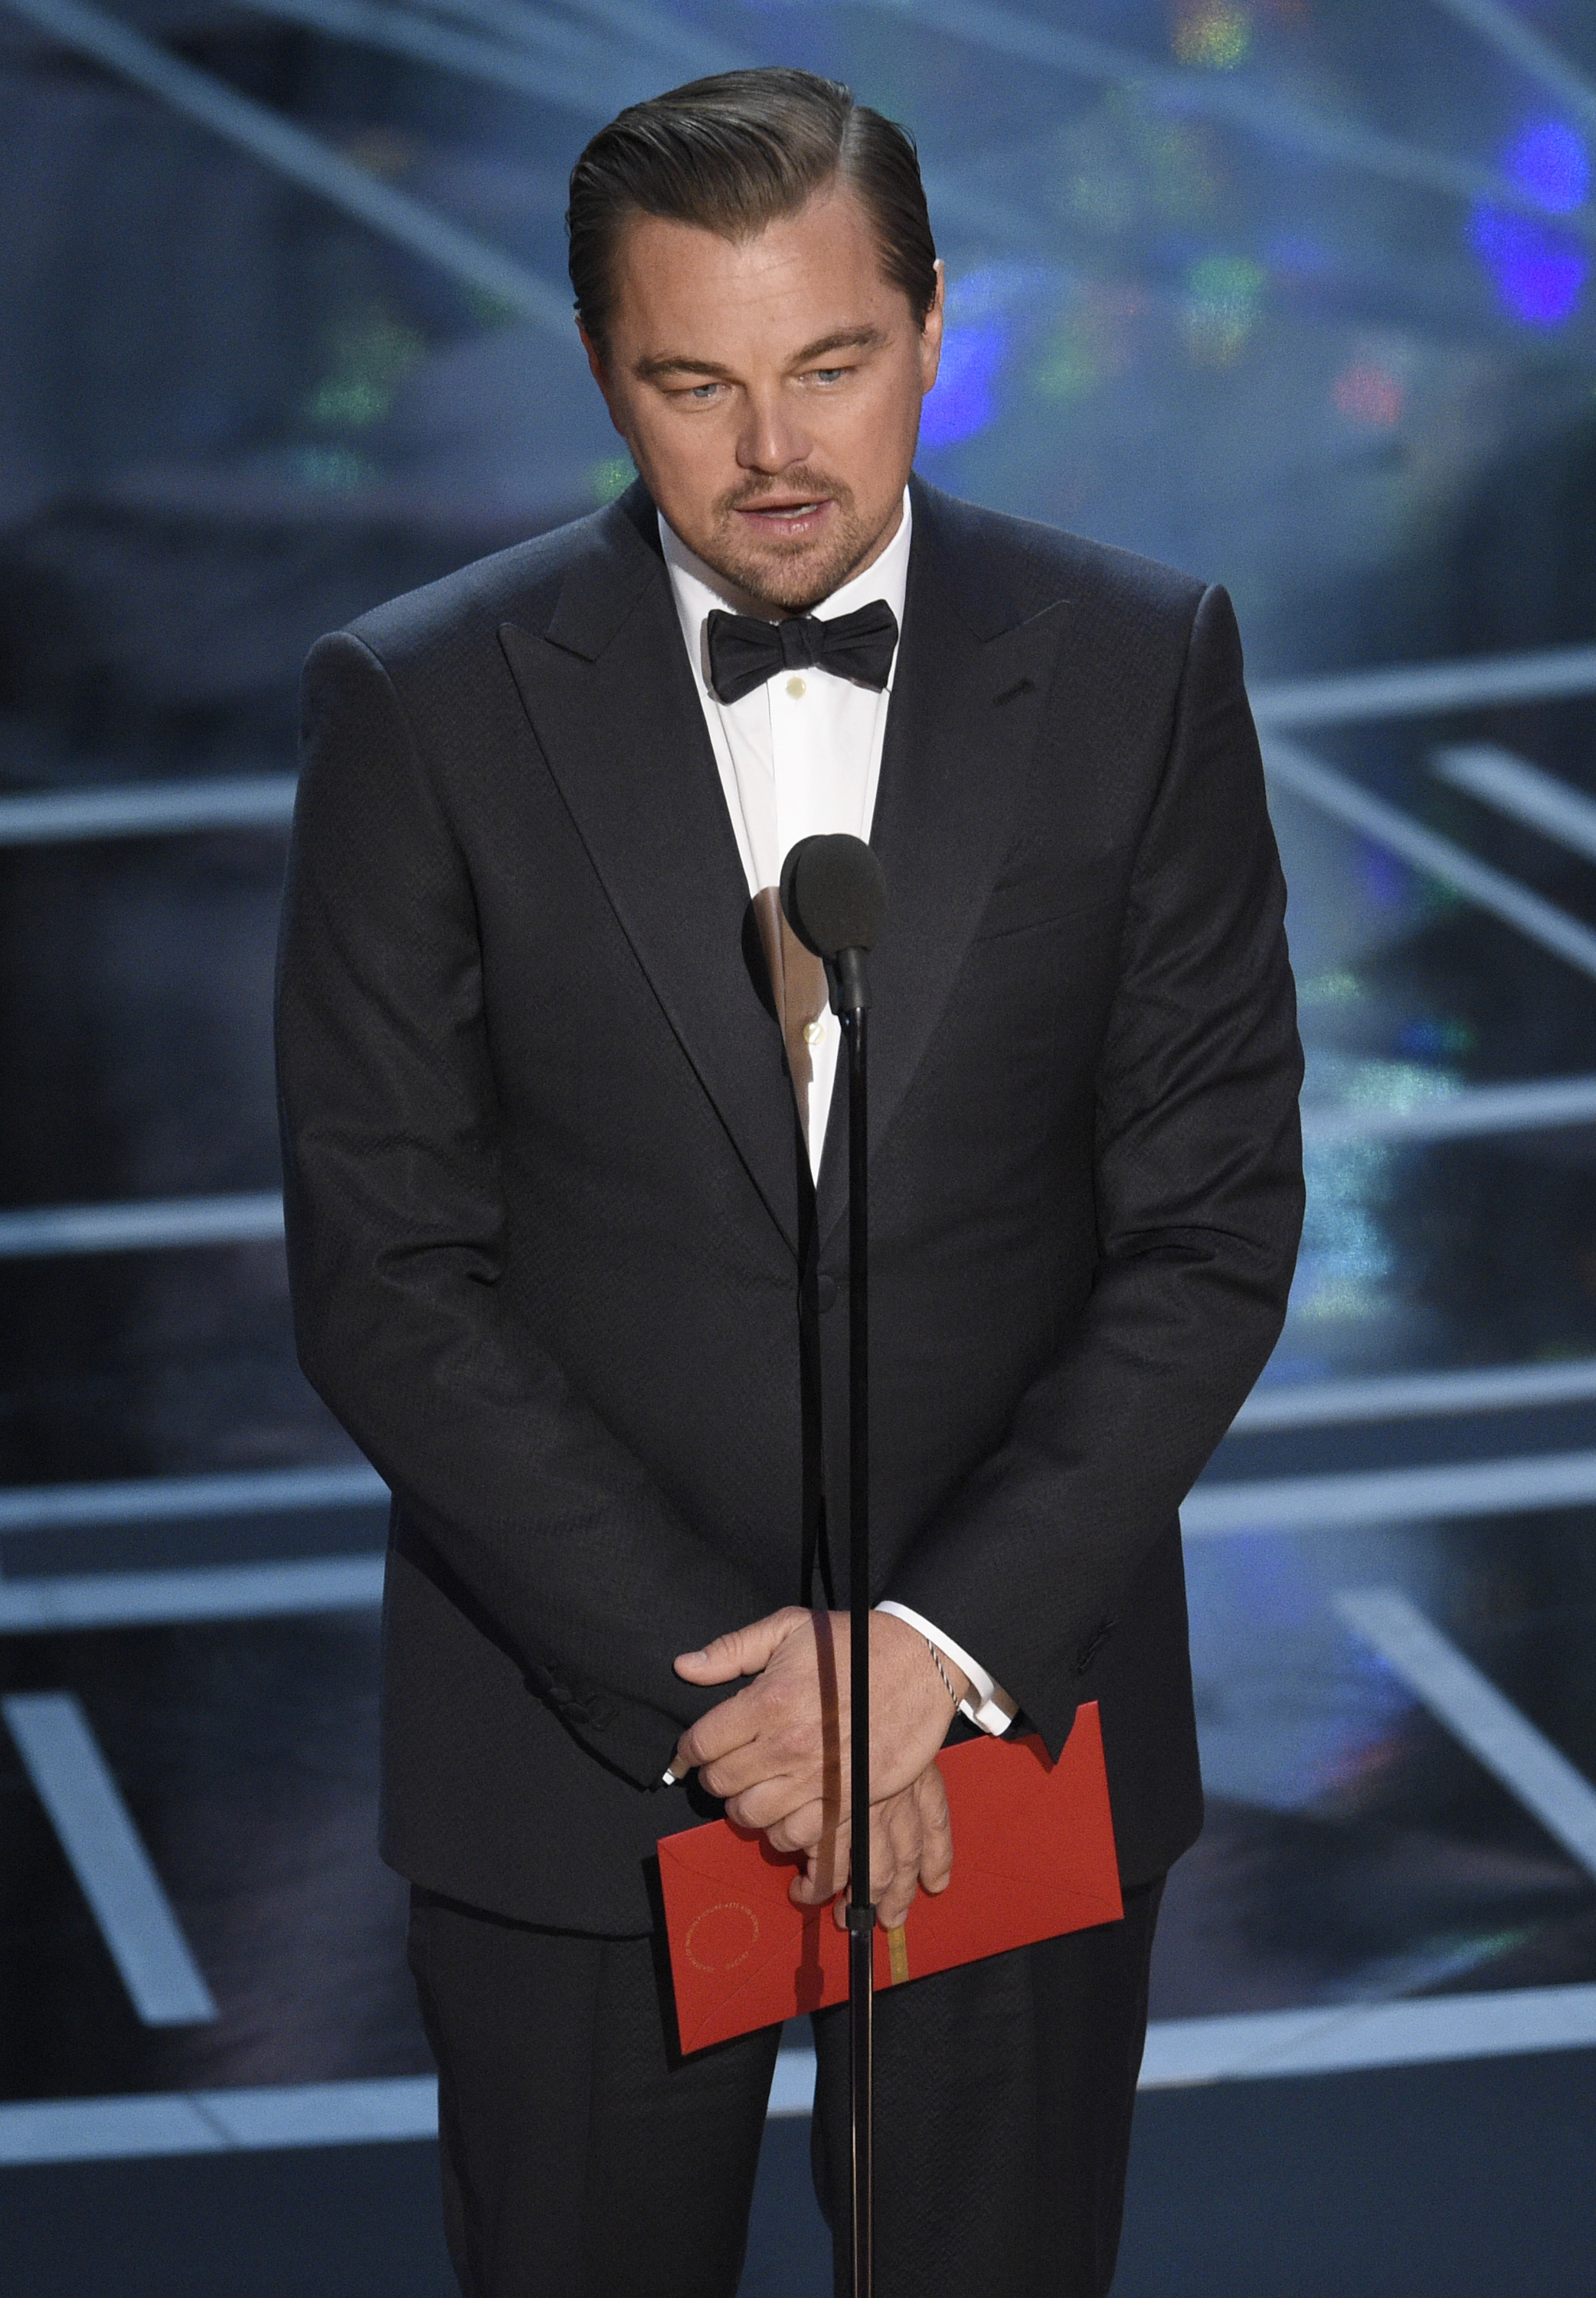 Leonardo DiCaprio presents the award for best actress in a leading role at the Oscars on Sunday, Feb. 26, 2017, at the Dolby Theatre in Los Angeles. (Photo by Chris Pizzello/Invision/AP)